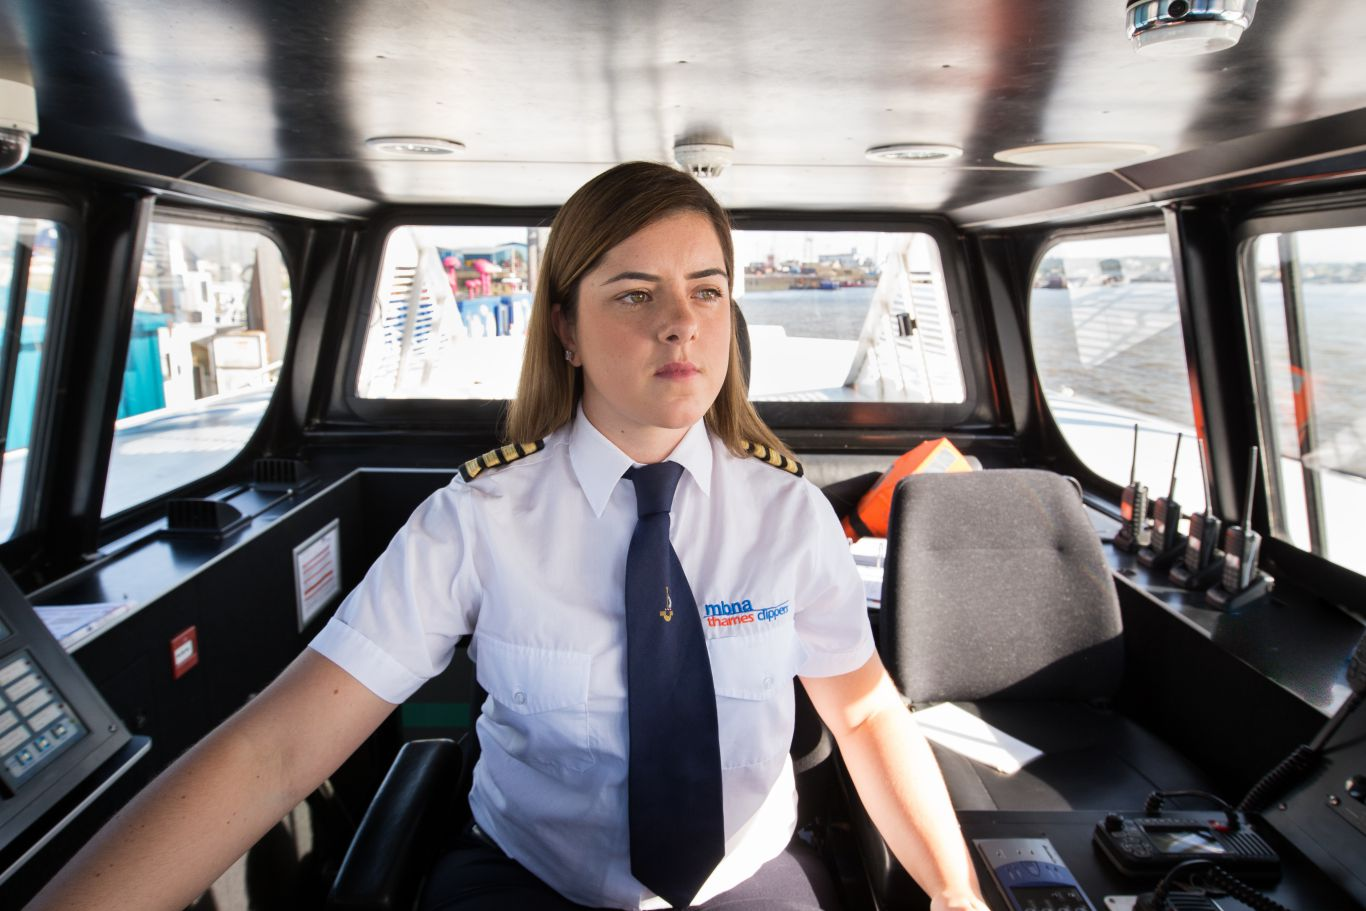 """Joy McGlinchey: 'In such a typically male-dominated industry, it is really good to see that the ratios are changing"""". Photo: PR"""